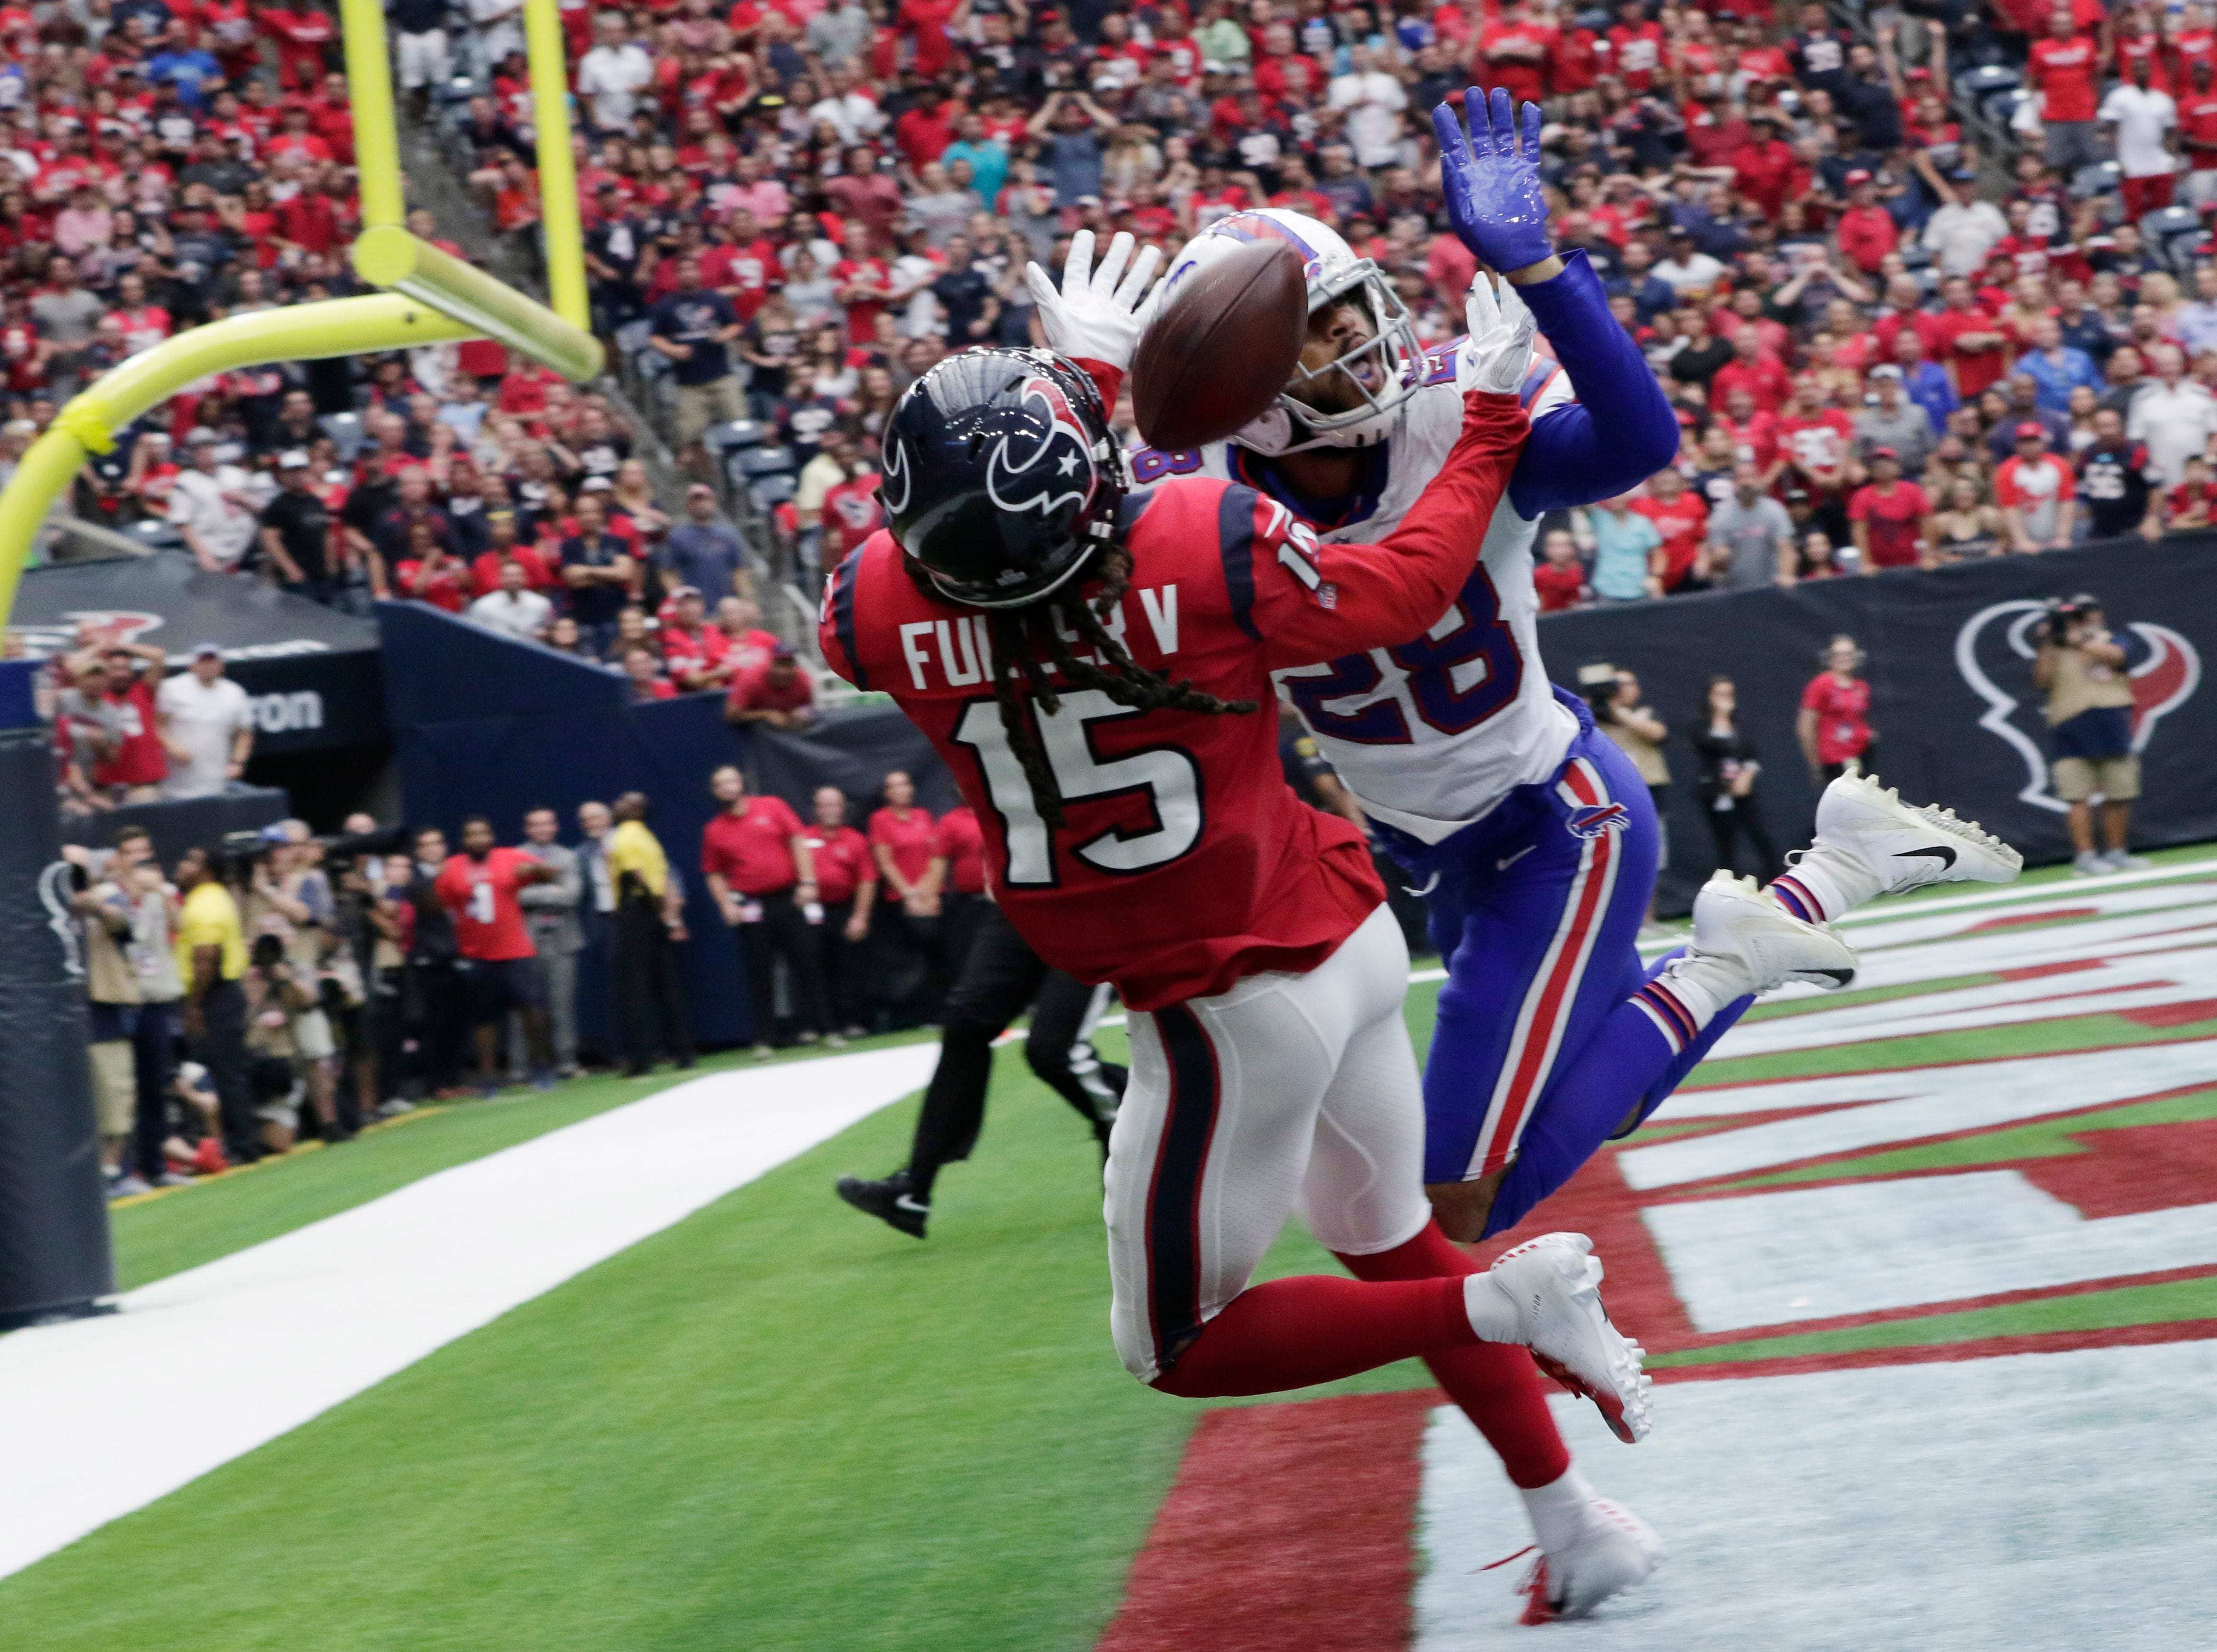 Buffalo Bills defensive back Phillip Gaines (28) breaks up a pass intended for Houston Texans wide receiver Will Fuller (15) during the second half of an NFL football game, Sunday, Oct. 14, 2018, in Houston. Interference was called on the play. (AP Photo/Michael Wyke)